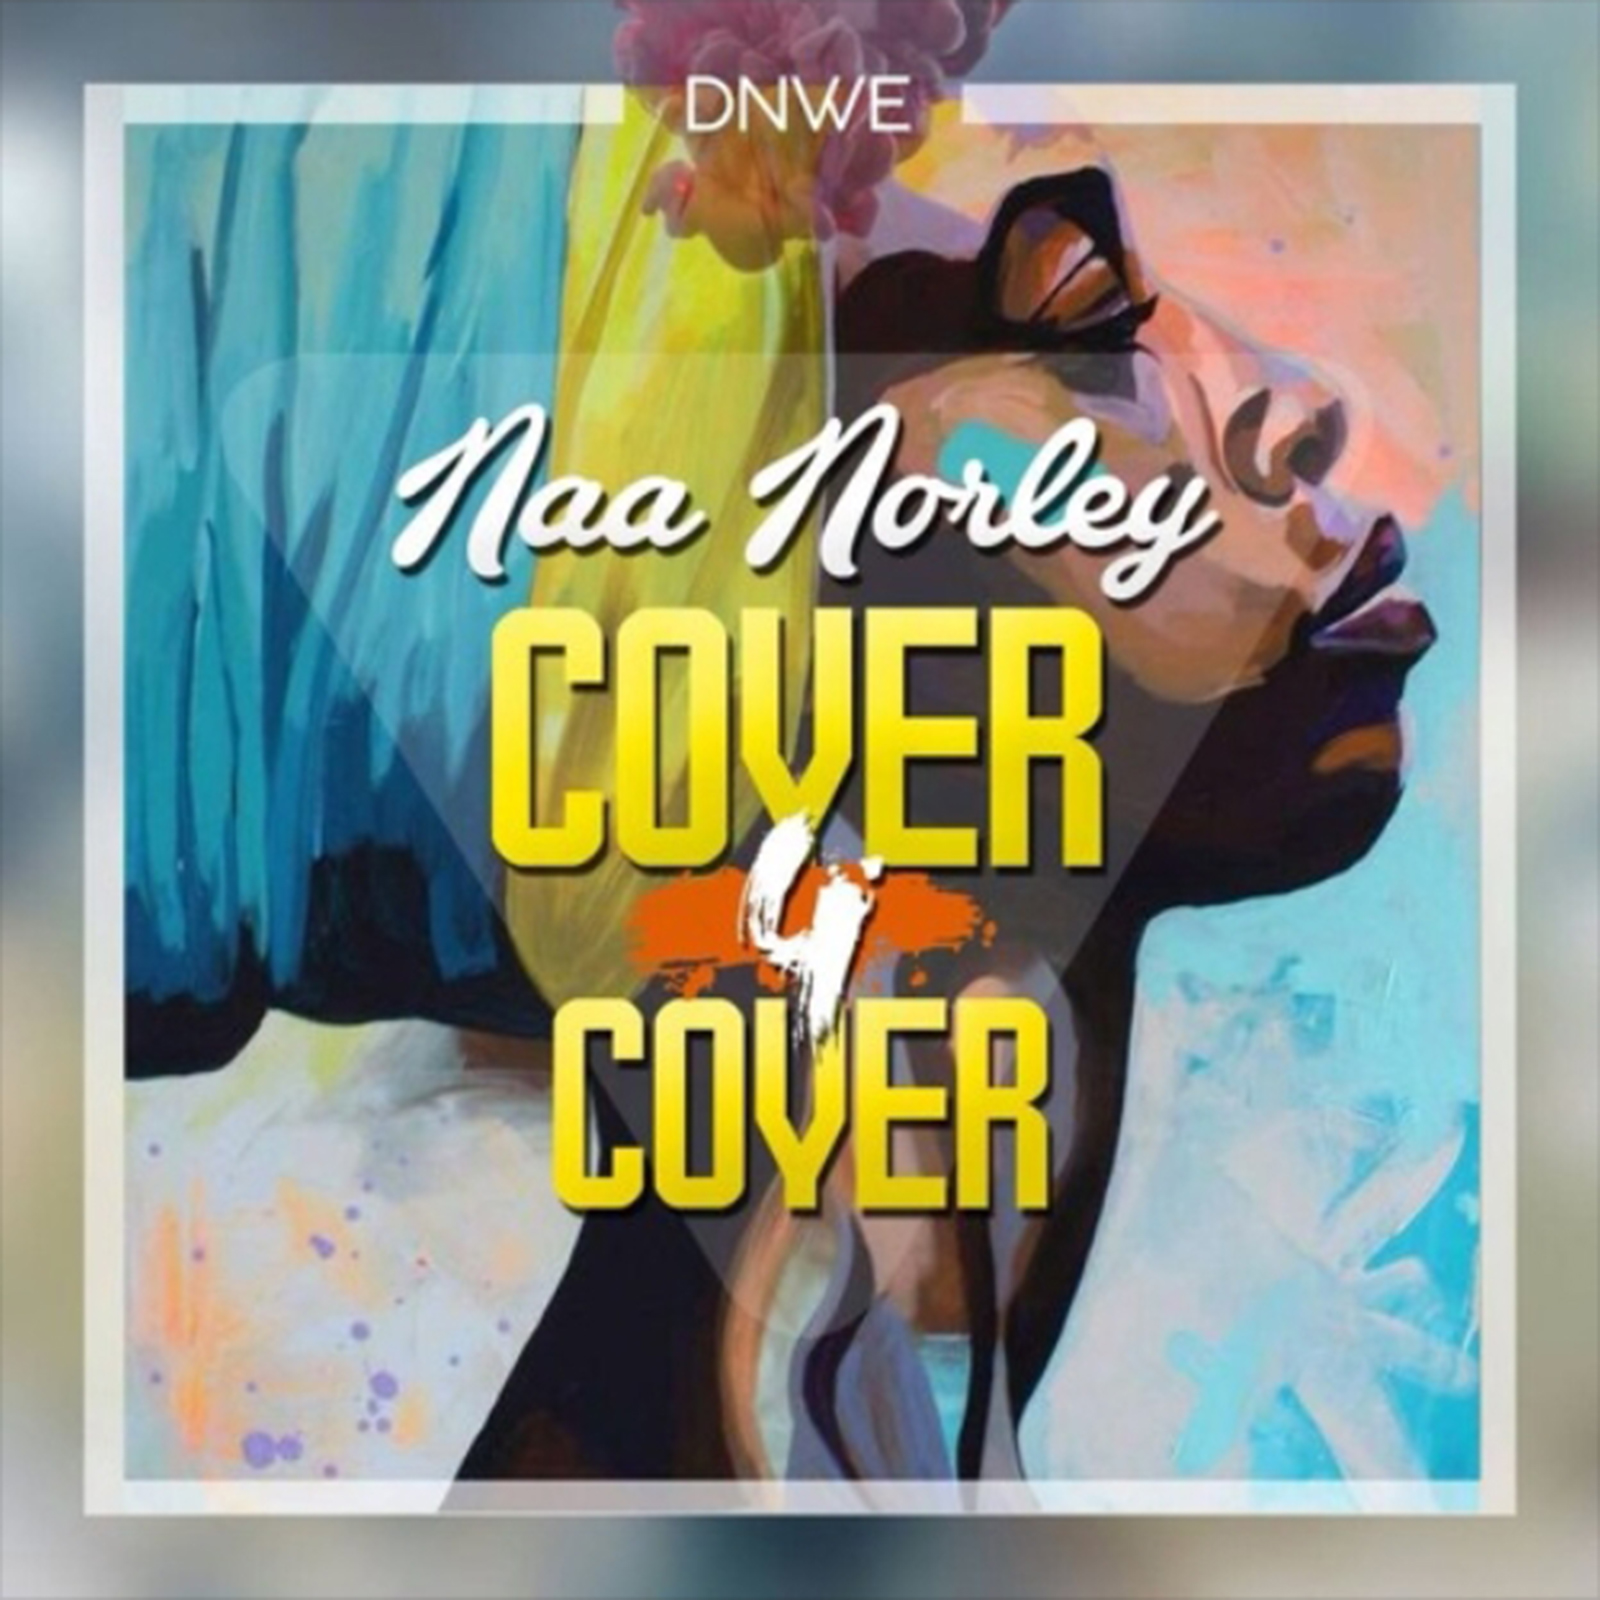 naa norley, cover 4 cover, ghana music